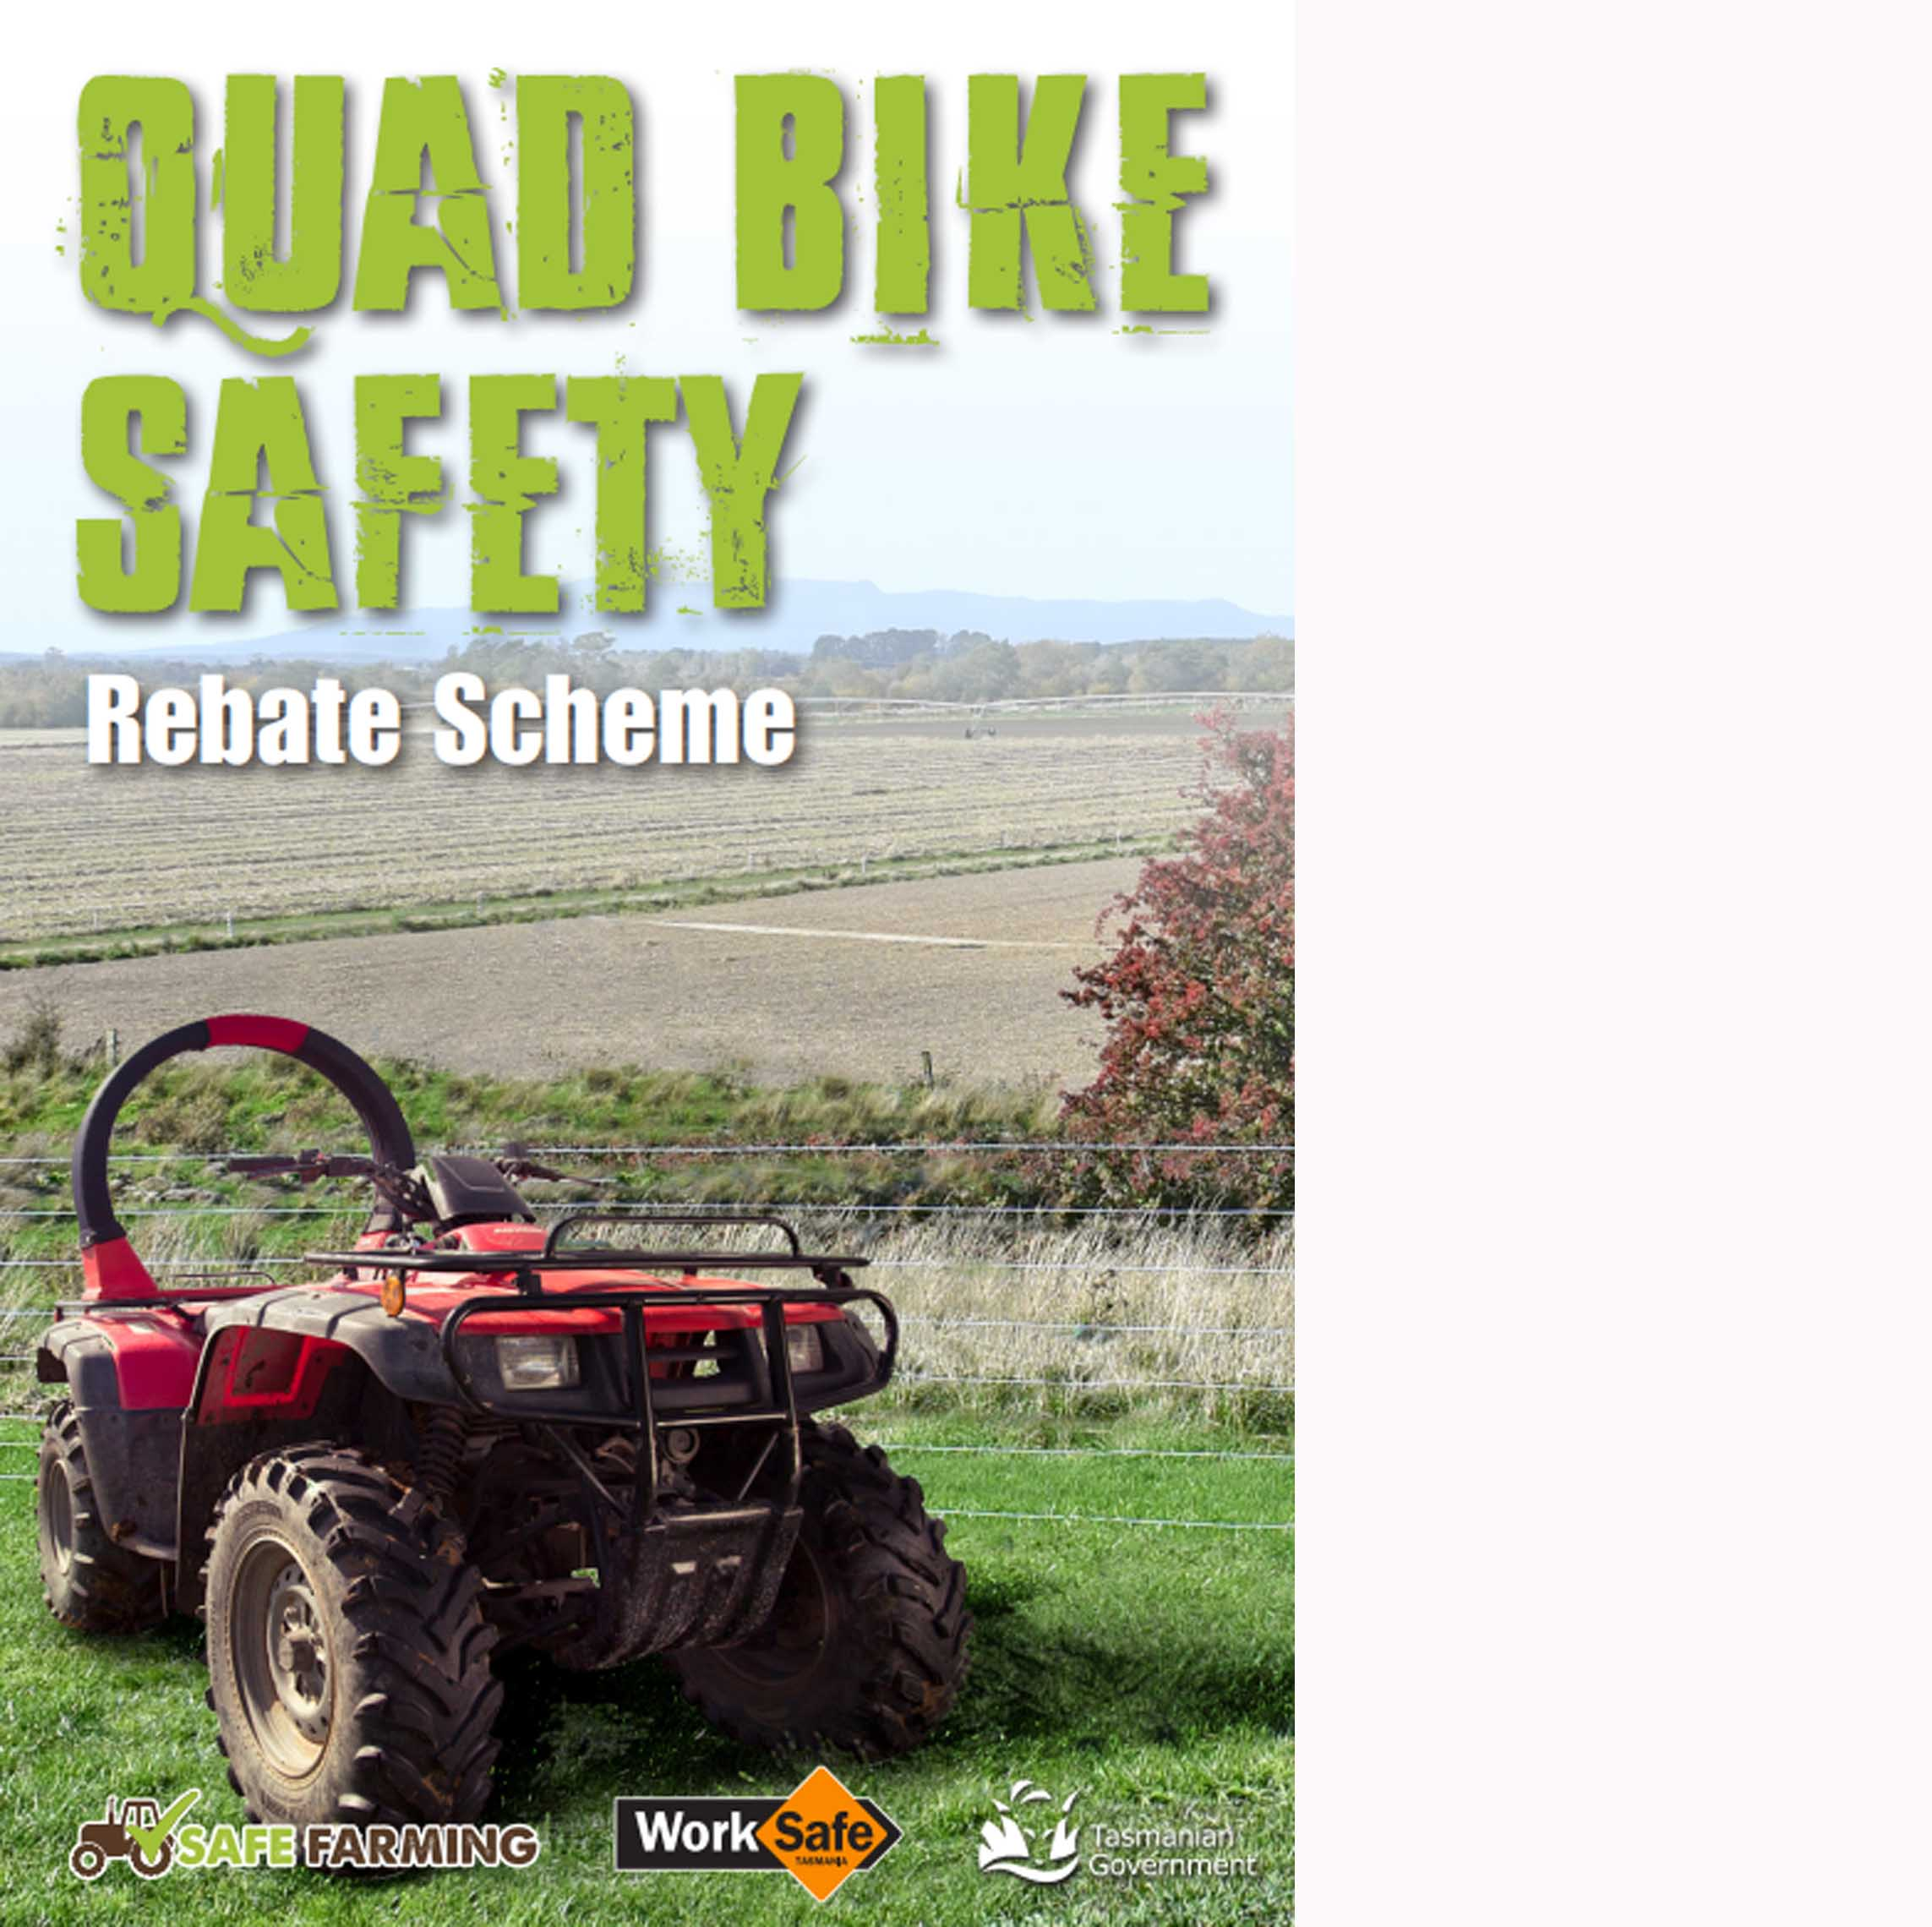 ATV Lifeguard - Worksafe Tasmania Rebate Scheme